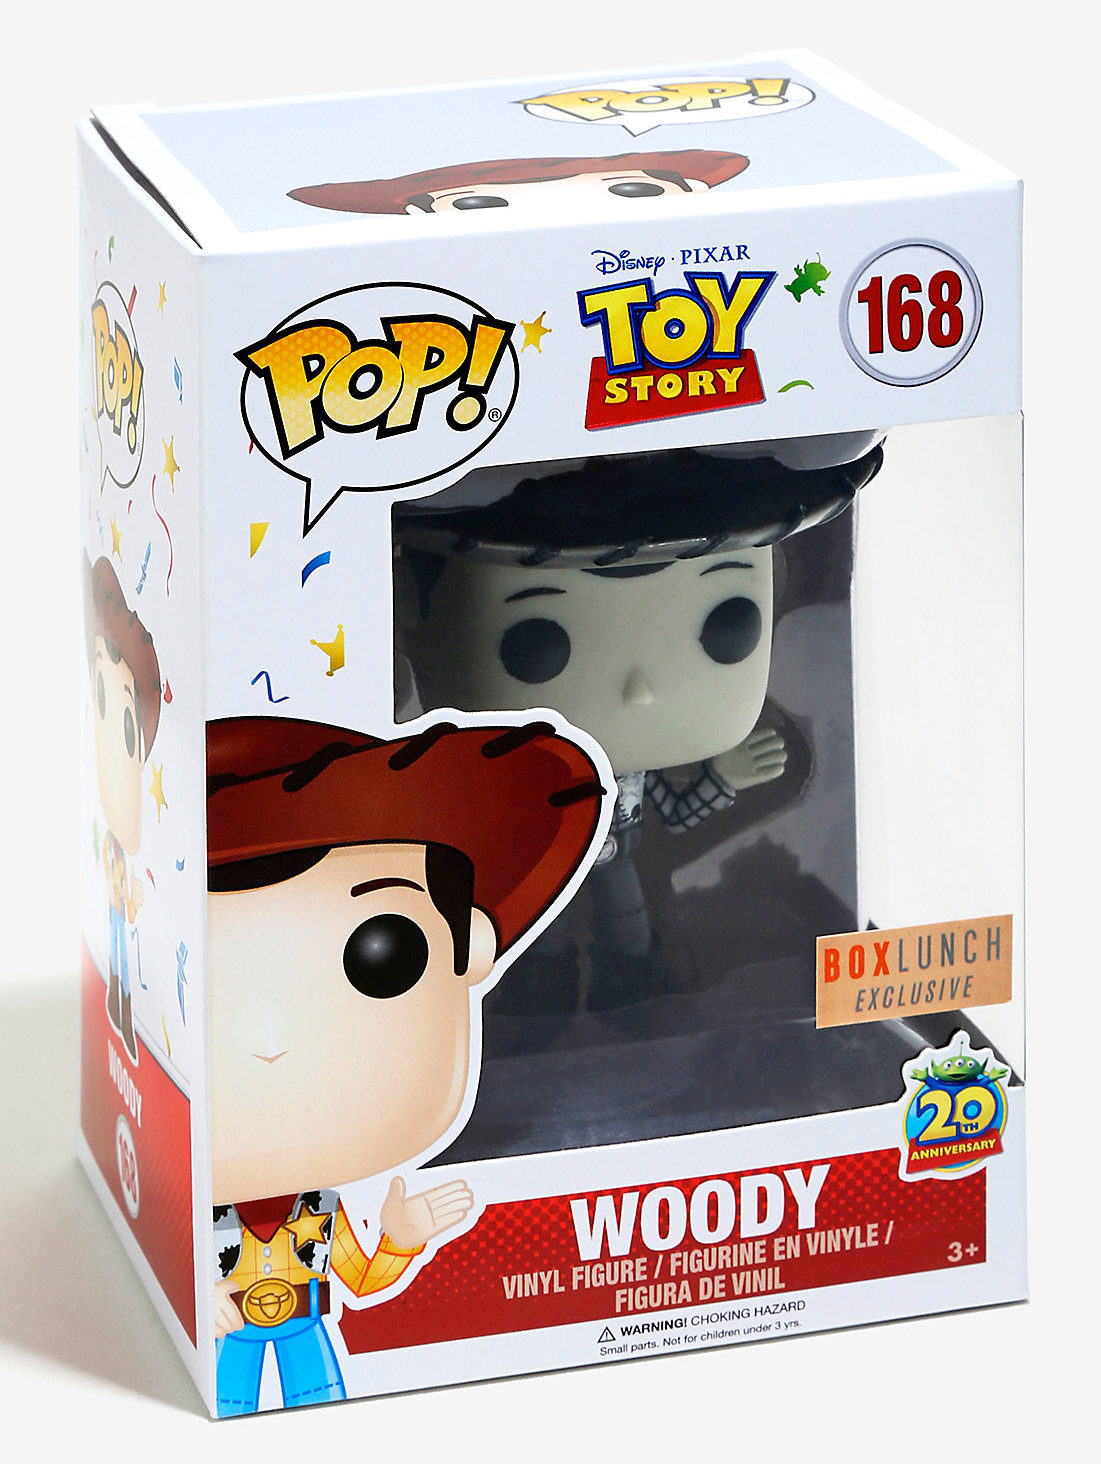 Funko Pop Toy Story Woody Box Lunch Exclusive Plush Island